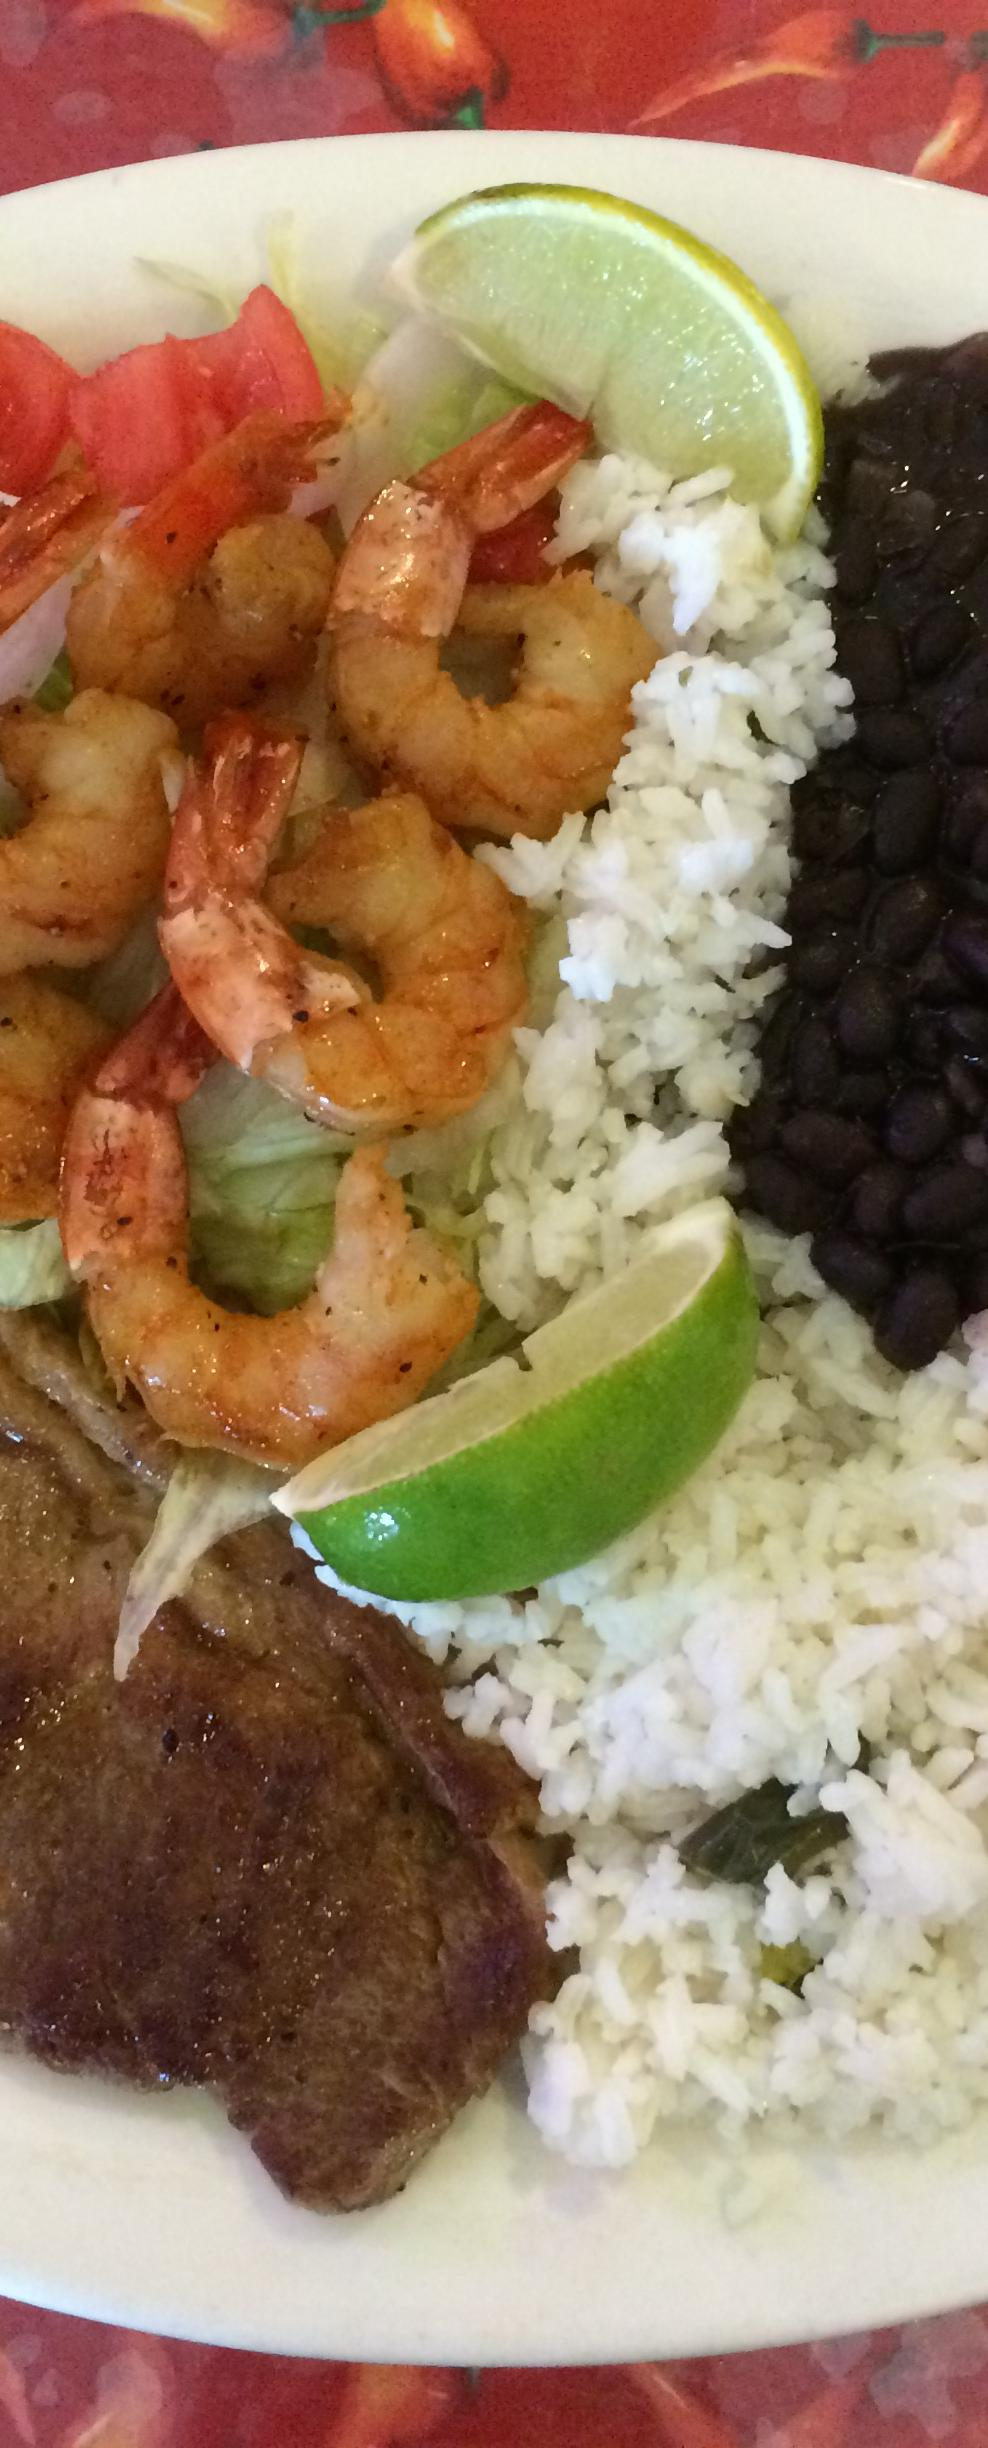 Benito's Authentic Mexican Food image 1